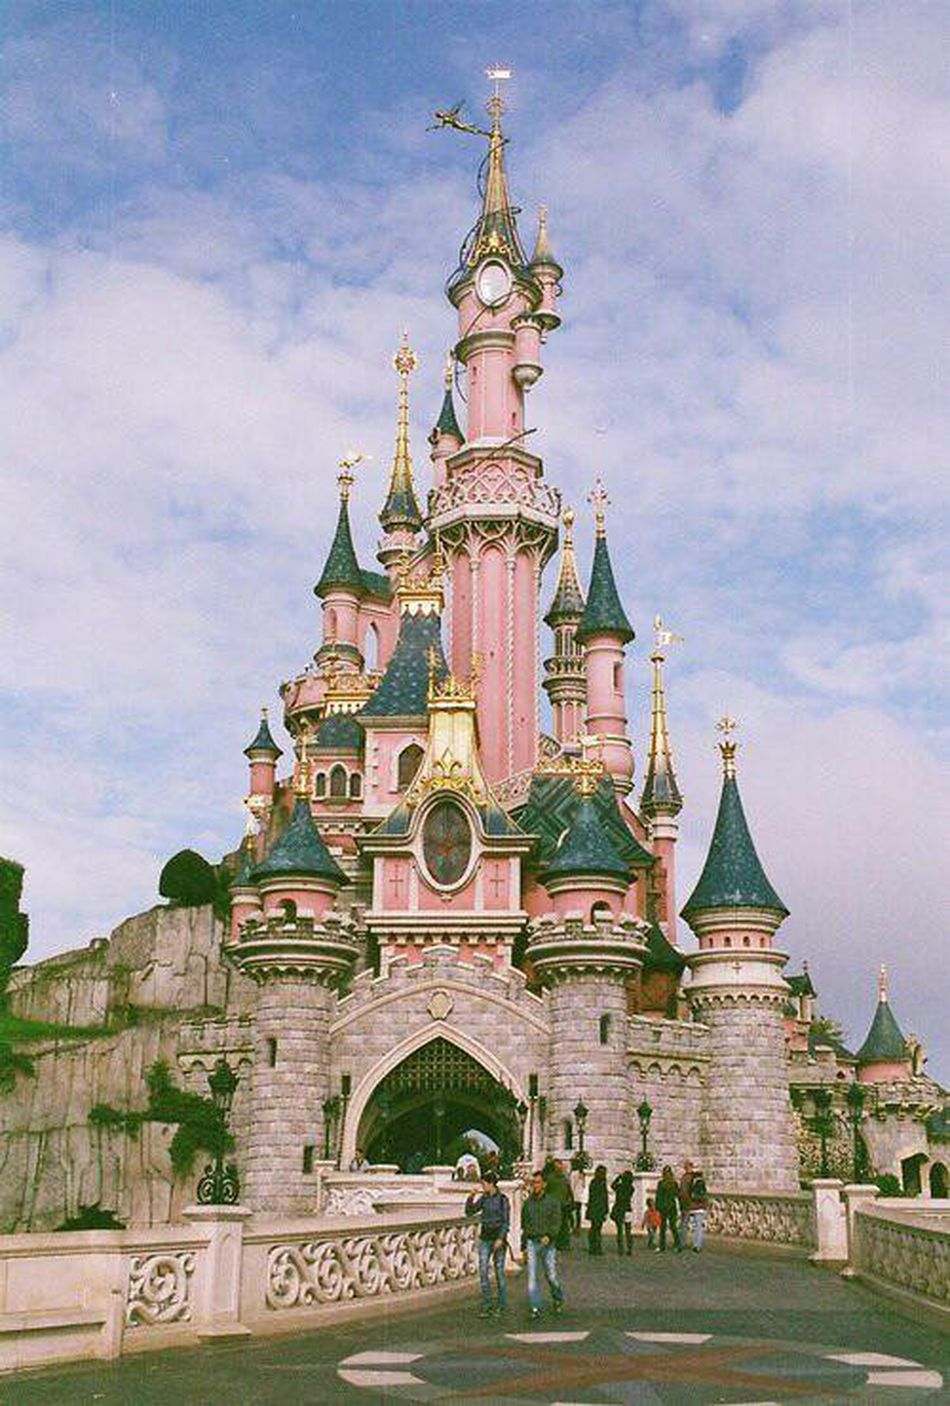 Disneyland 💞 Dream Paris Twoyearsago Beautiful Disneyland Play Magic 💫